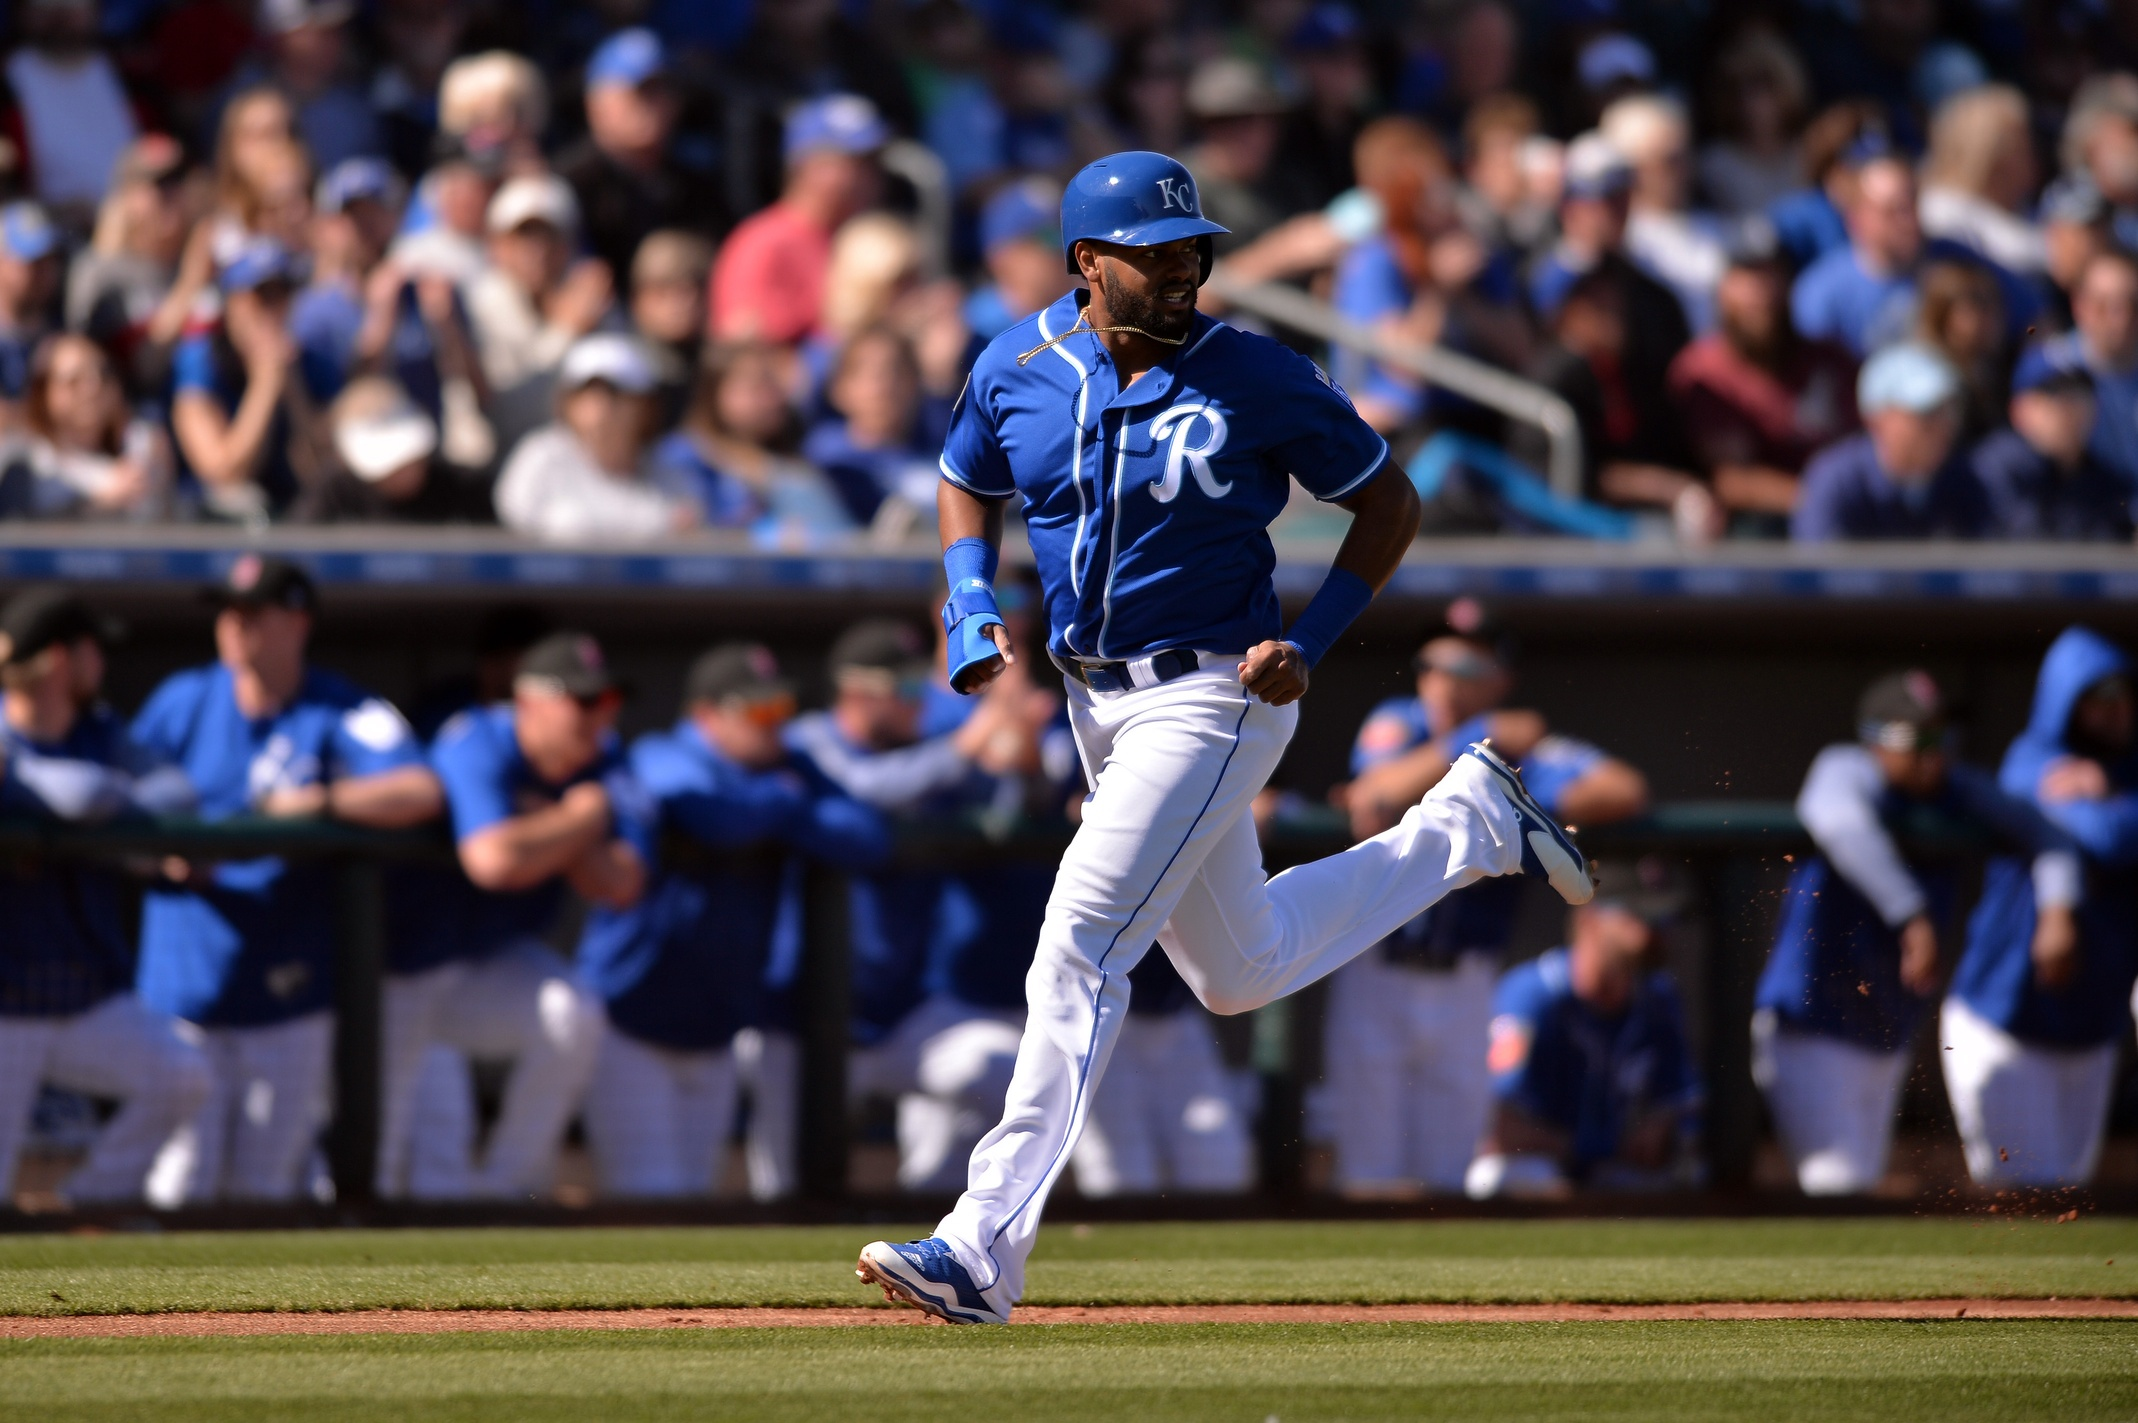 Feb 24, 2018; Surprise, AZ, USA; Kansas City Royals outfielder Jorge Bonifacio (38) heads home on a sacrifice fly by first baseman Hunter Dozier (17) during the second inning against the Los Angeles Dodgers at Surprise Stadium. Mandatory Credit: Orlando Ramirez-USA TODAY Sports